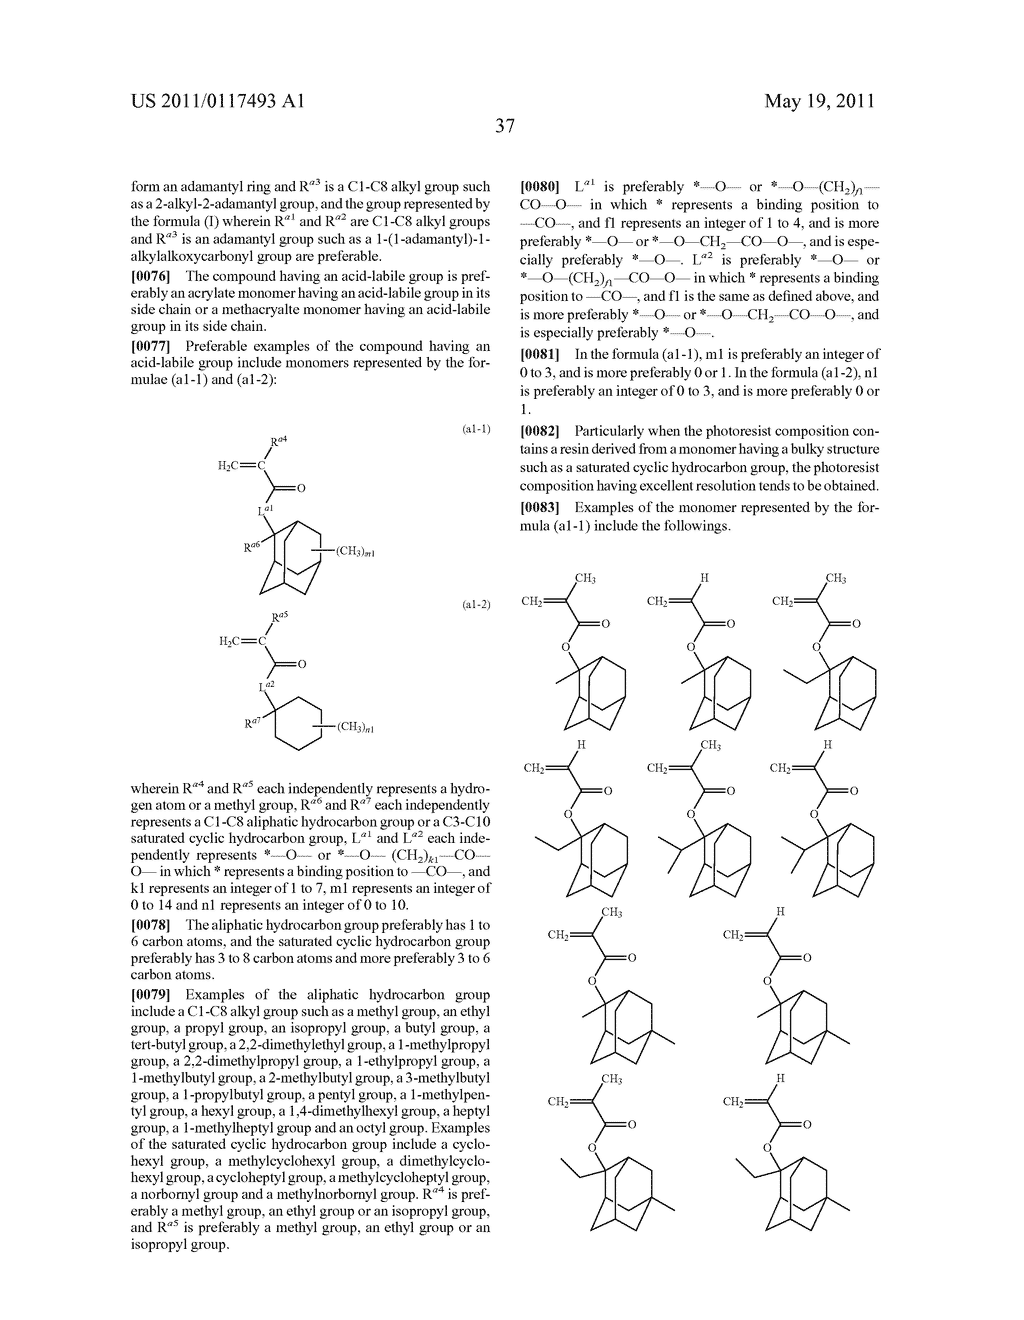 SALT AND PHOTORESIST COMPOSITION CONTAINING THE SAME - diagram, schematic, and image 38